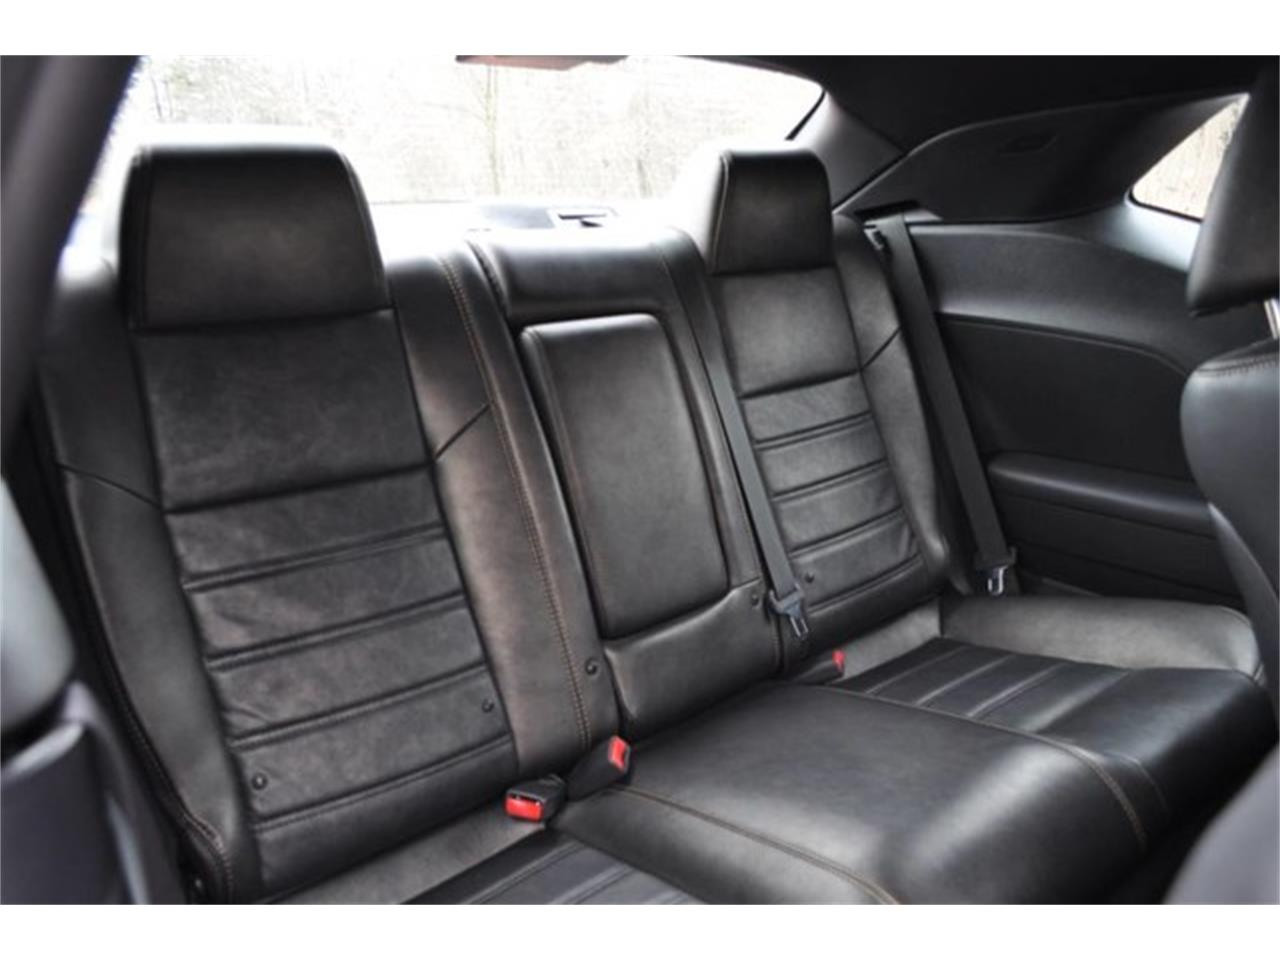 Large Picture of 2014 Dodge Challenger located in Clifton Park New York - $27,999.00 - PU6D